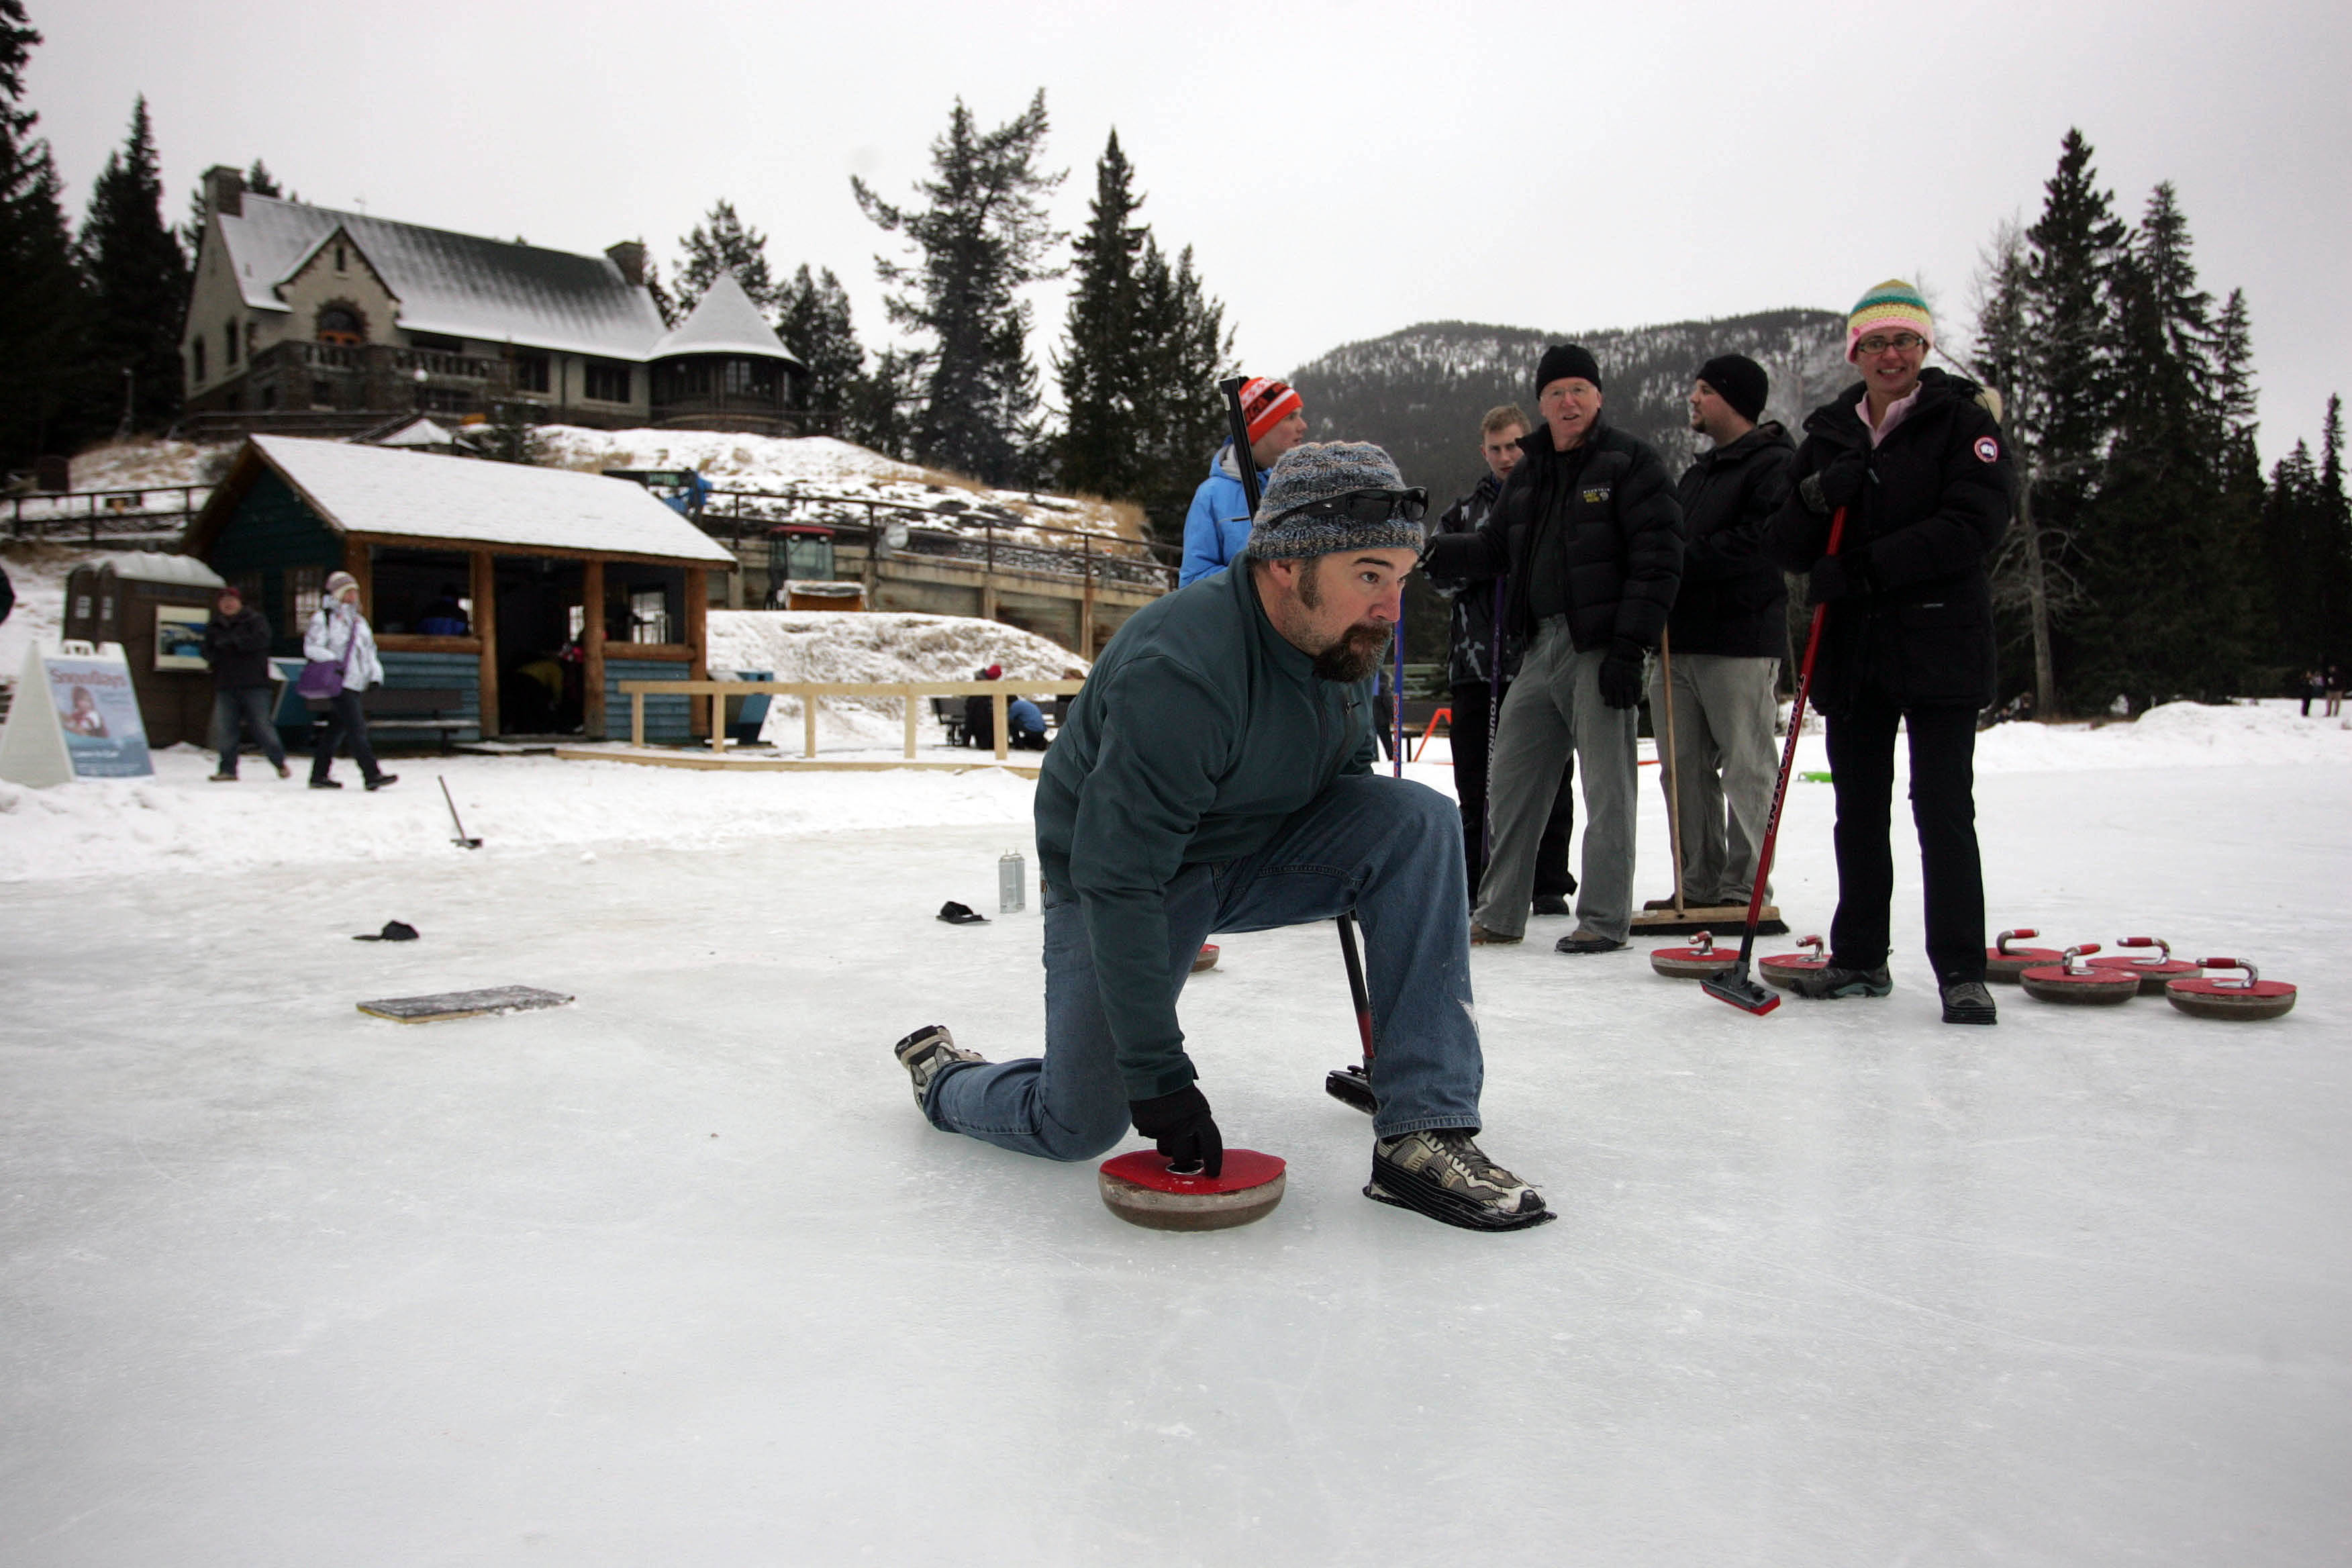 Curling (and other winter sports)